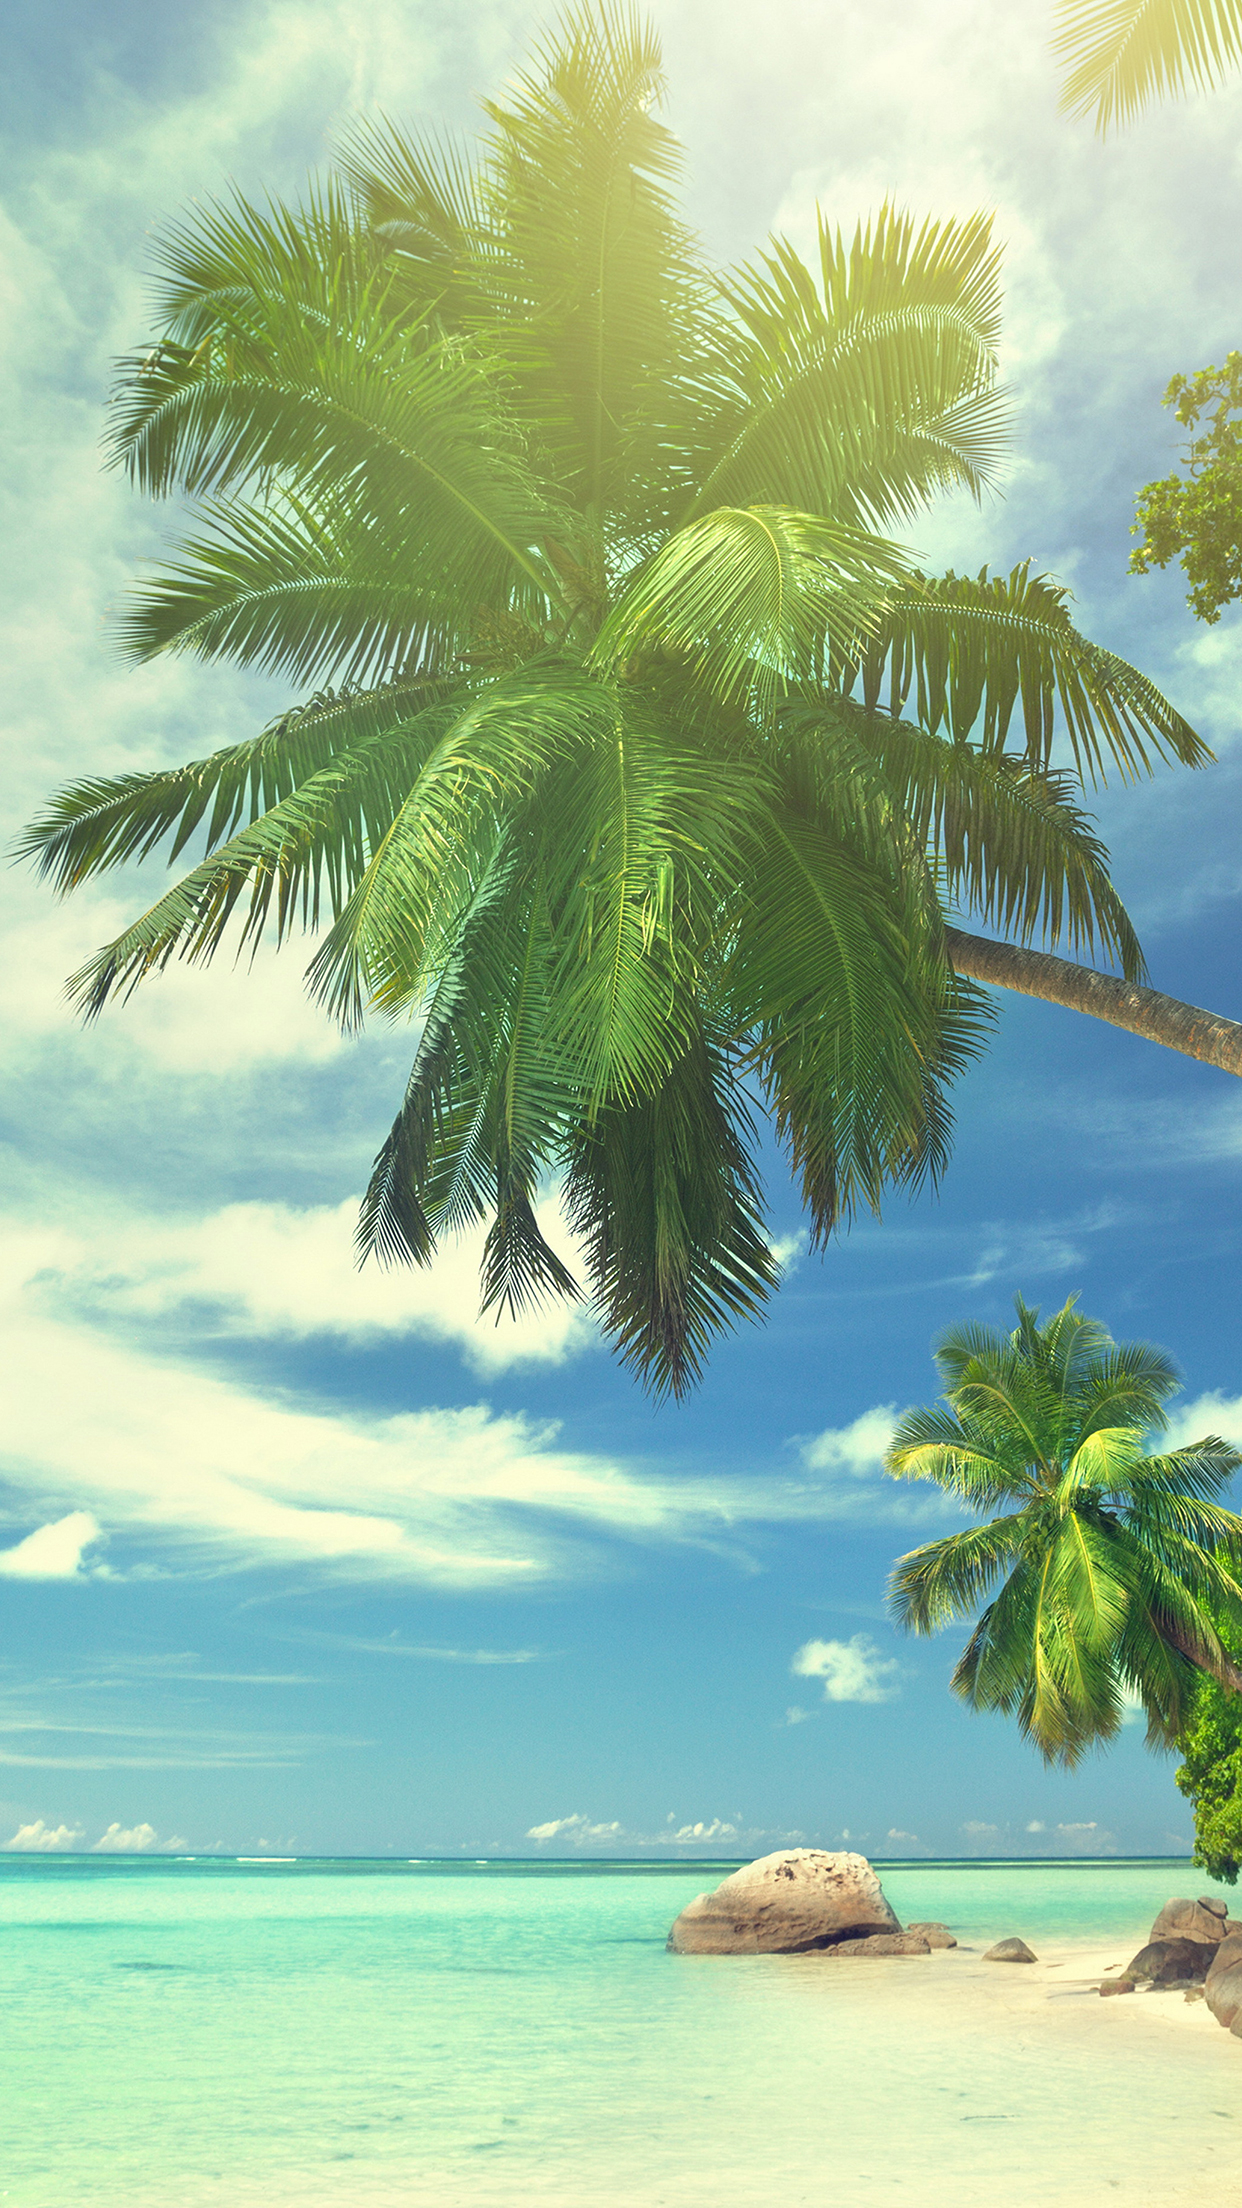 Apple Iphone 5 Wallpapers Hd Free Download Summer Tropical Paradise Wallpaper For Iphone X 8 7 6